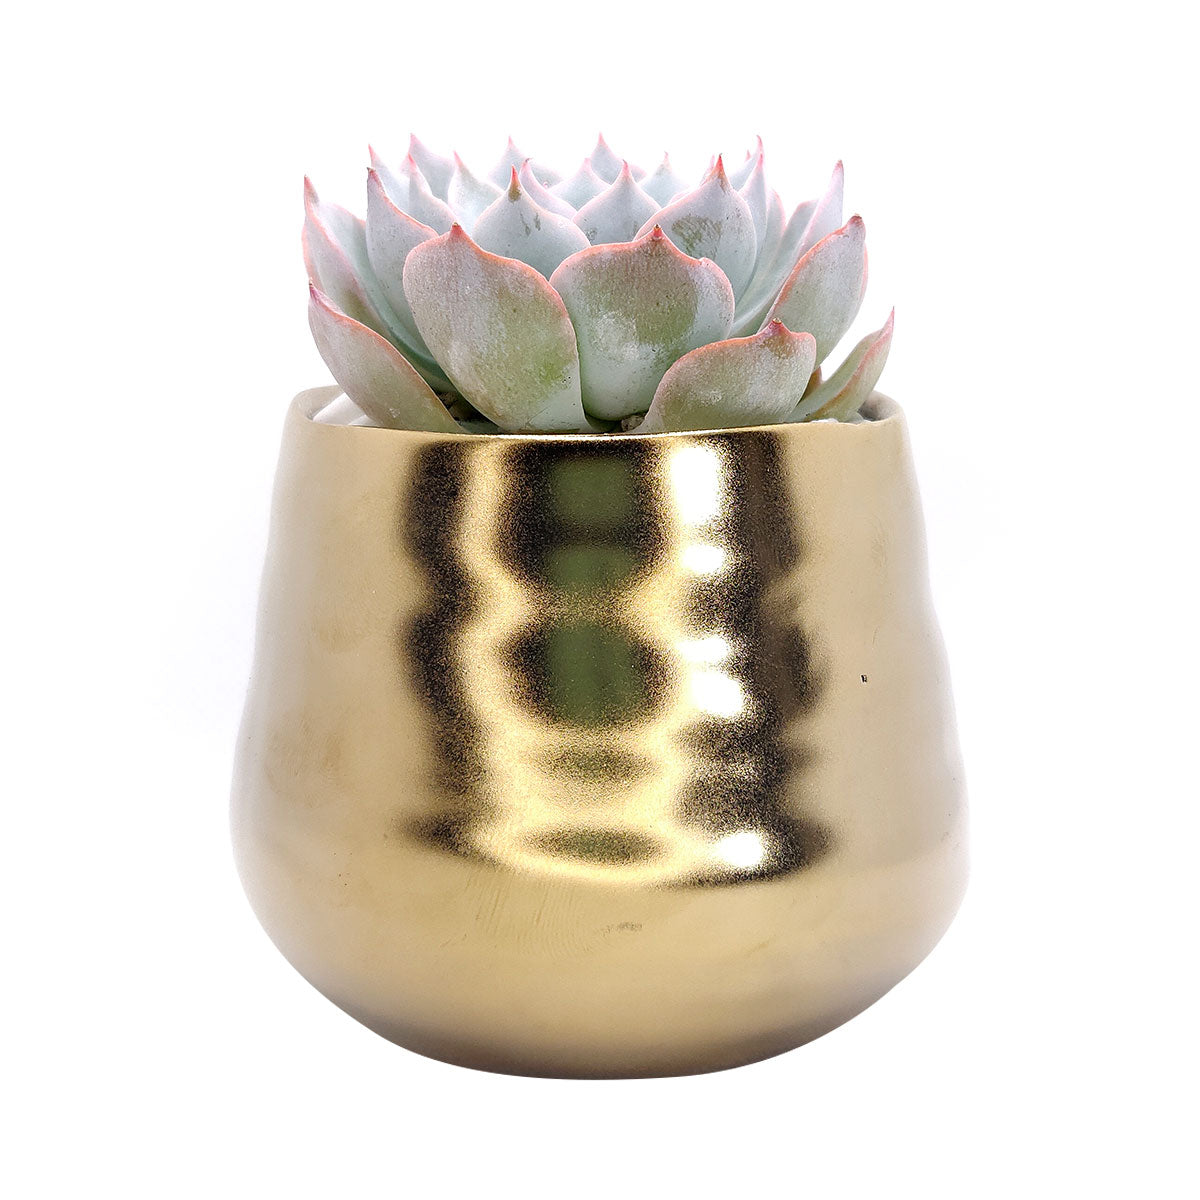 Matte Gold Ceramic Pot for sale, Succulent pot with rustic style for home decor, Small pot for succulent and cactus plant, Ceramic flower pot for sale